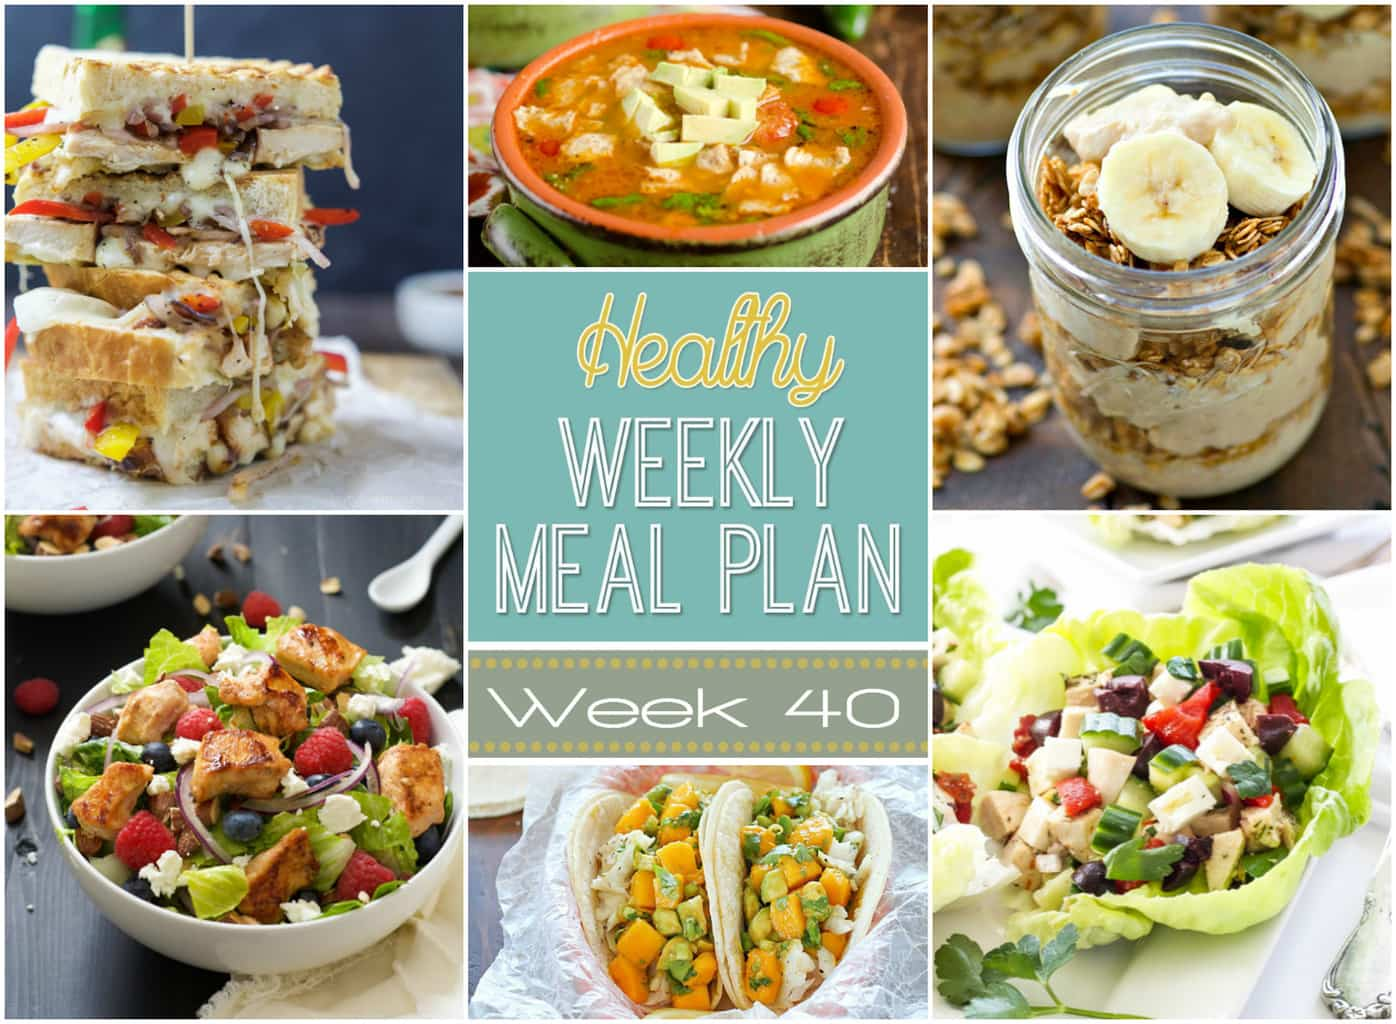 Get healthy recipes, how-tos and tips from Food Network for every day of the week - from healthy, easy weeknight dinners to weekend appetizer recipes and healthy desserts.